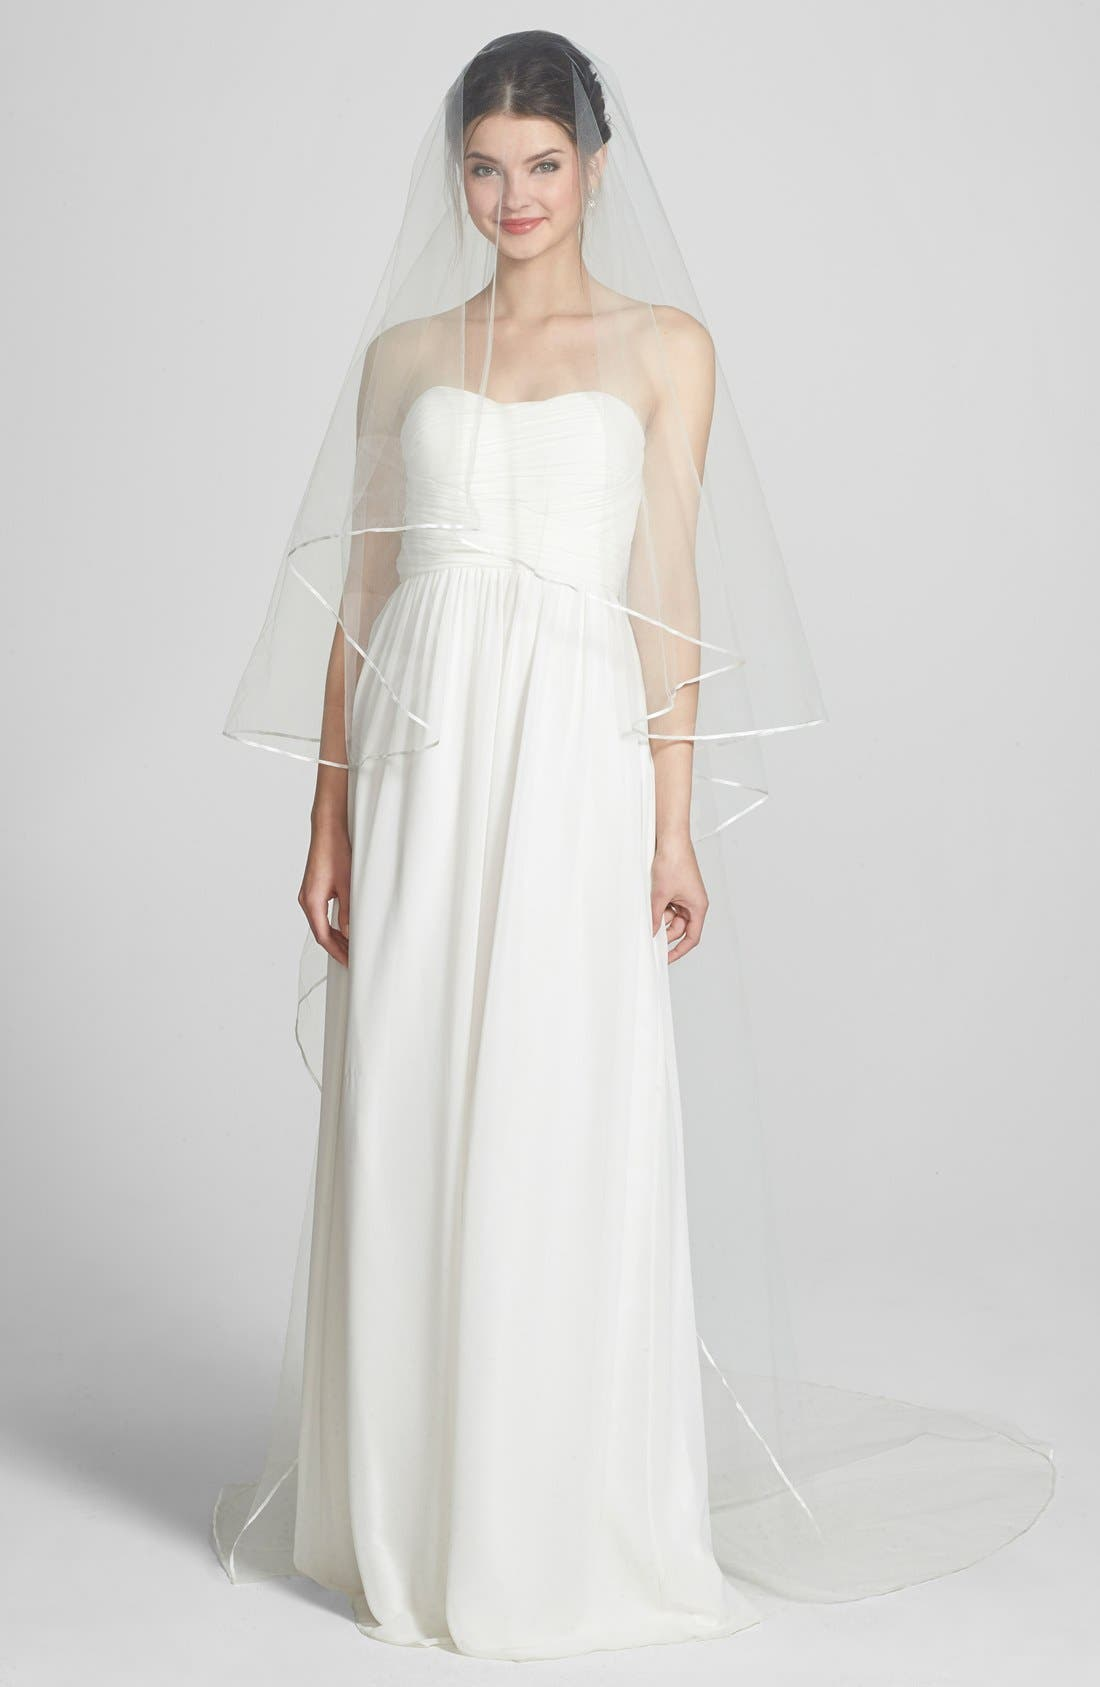 Main Image - Wedding Belles New York 'Mable' Two-Tier Satin Trim Cathedral Veil